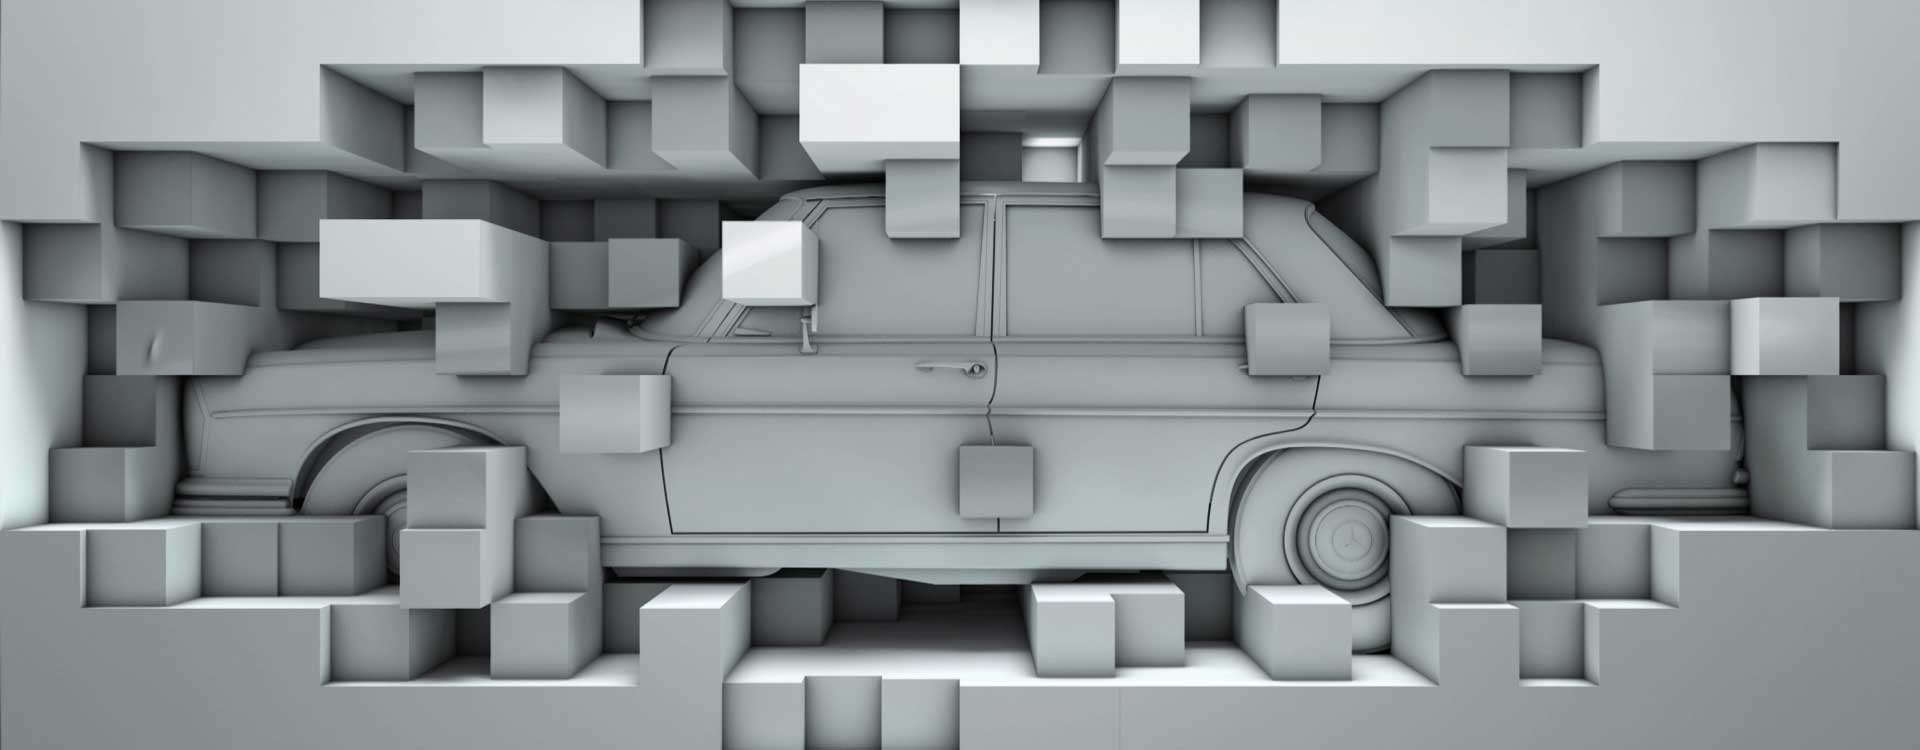 White oldtimer in cubes. Still from Mercedes-Benz Commercial.